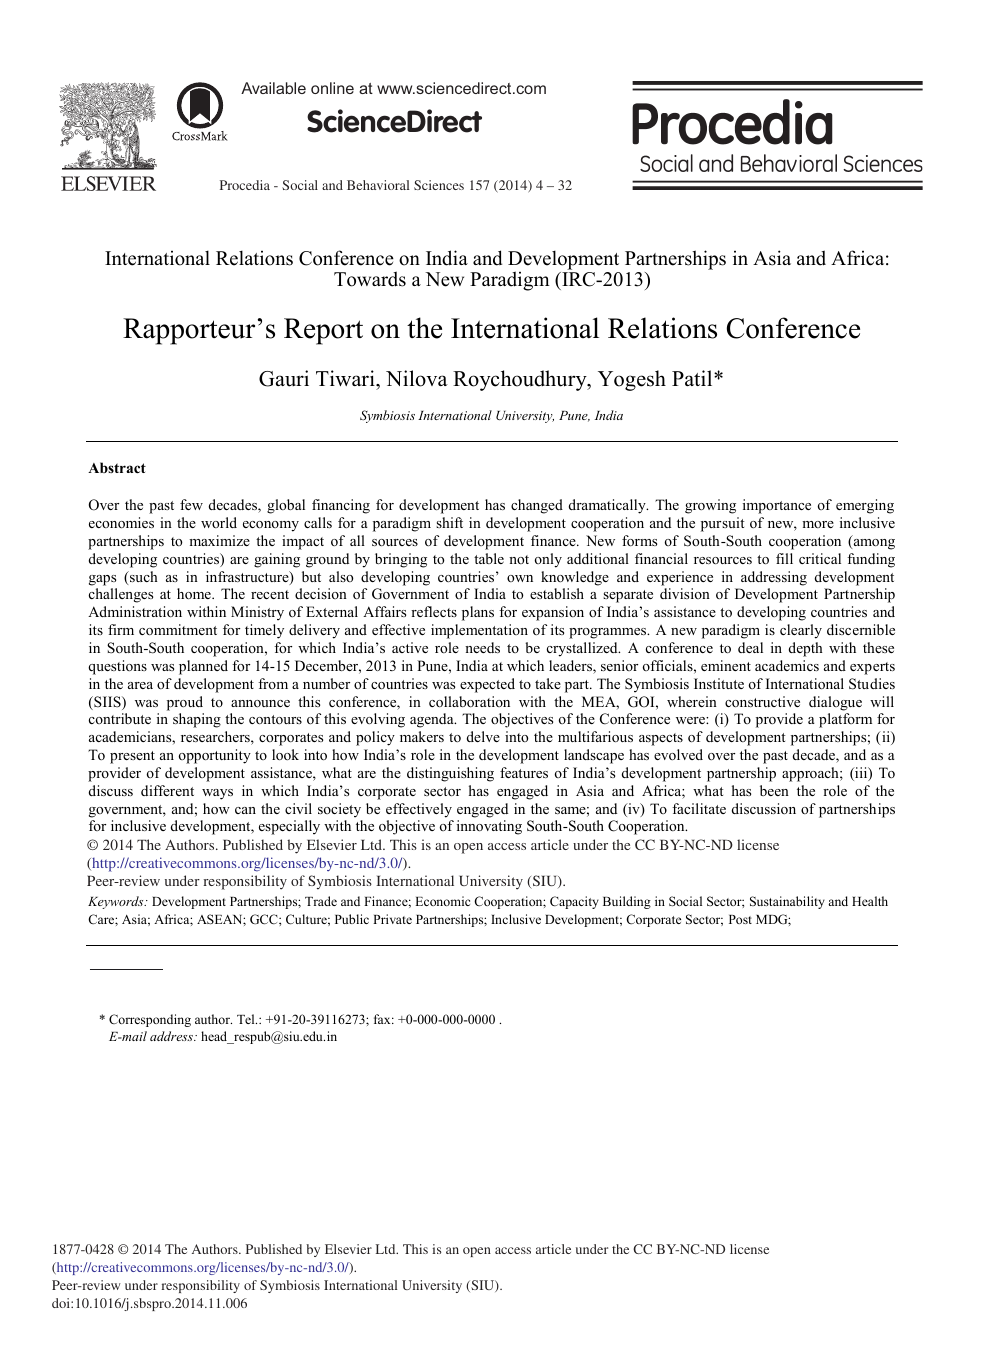 Rapporteur's Report on the International Relations Conference